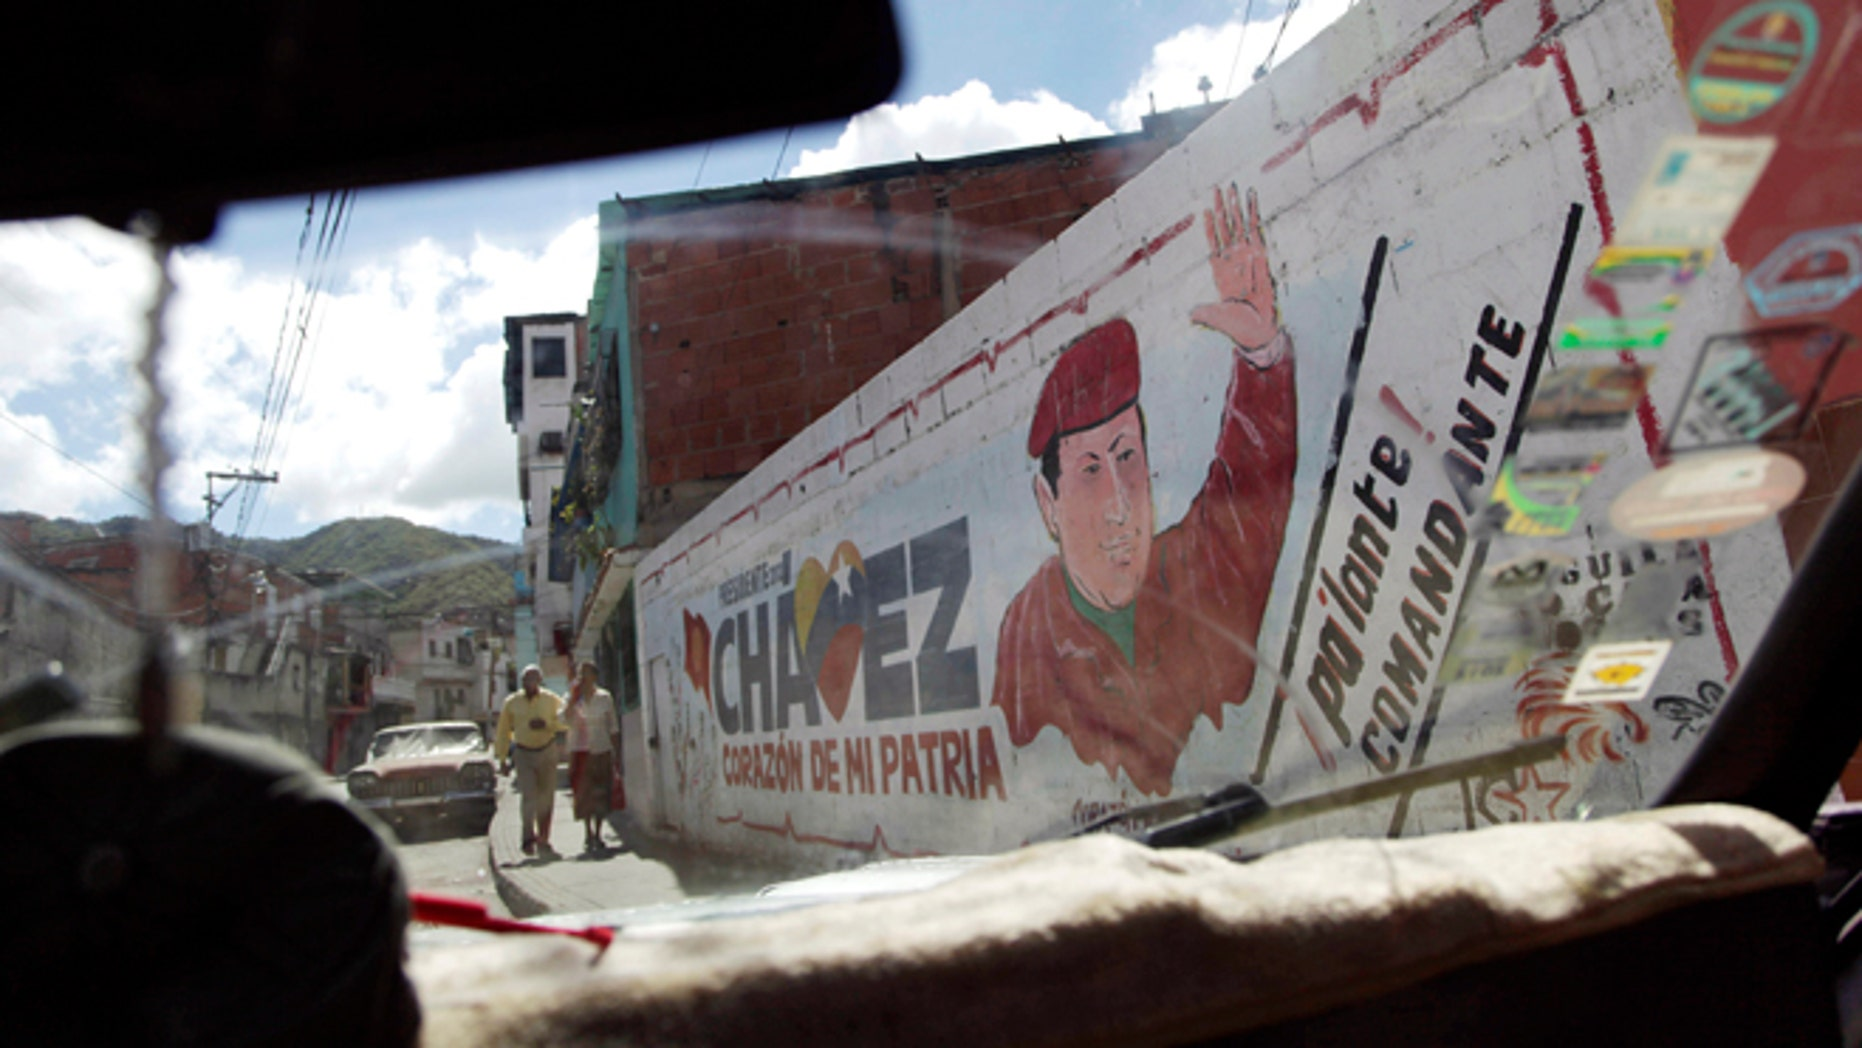 """The windshield of a car frames a mural of Venezuela's President Hugo Chavez in Caracas, Venezuela, Wednesday, Jan. 2, 2013.  Venezuela's vice president is returning home Wednesday from a visit with Chavez in Cuba and says the ailing president's condition remains """"delicate"""" three weeks after his cancer surgery. (AP Photo/Ariana Cubillos)"""